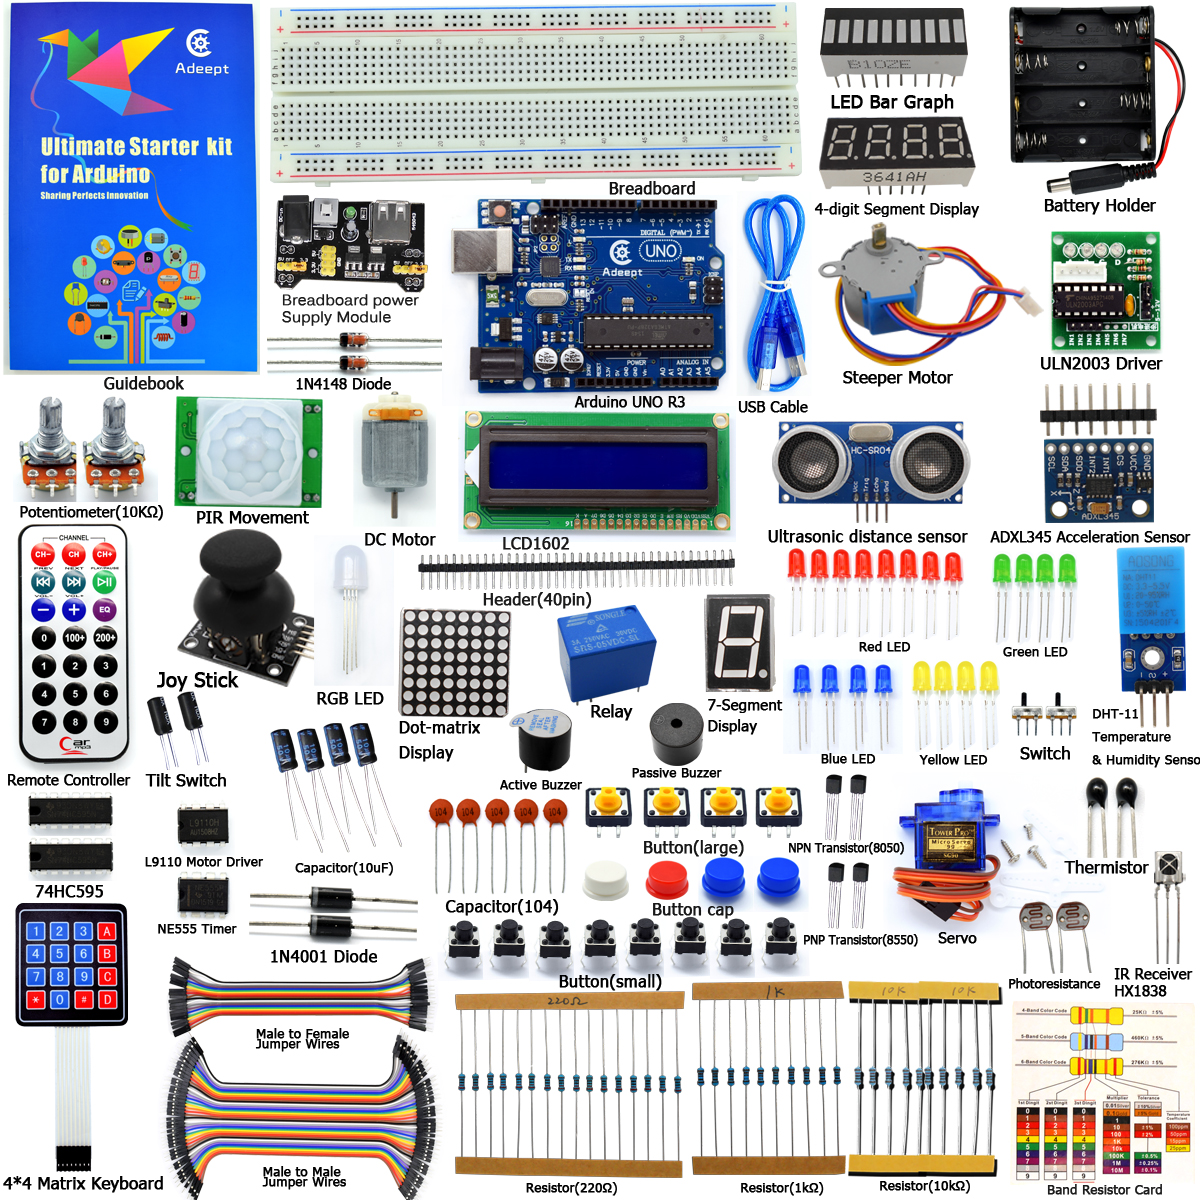 Adeept Ultimate Starter Kit For Arduino Uno R3 Lcd1602 Servo Motor Temperature Sensor Circuit Using 1n4148 Diode Diagram Relay Processing And C Code Beginner With 140 Pages Guidebook